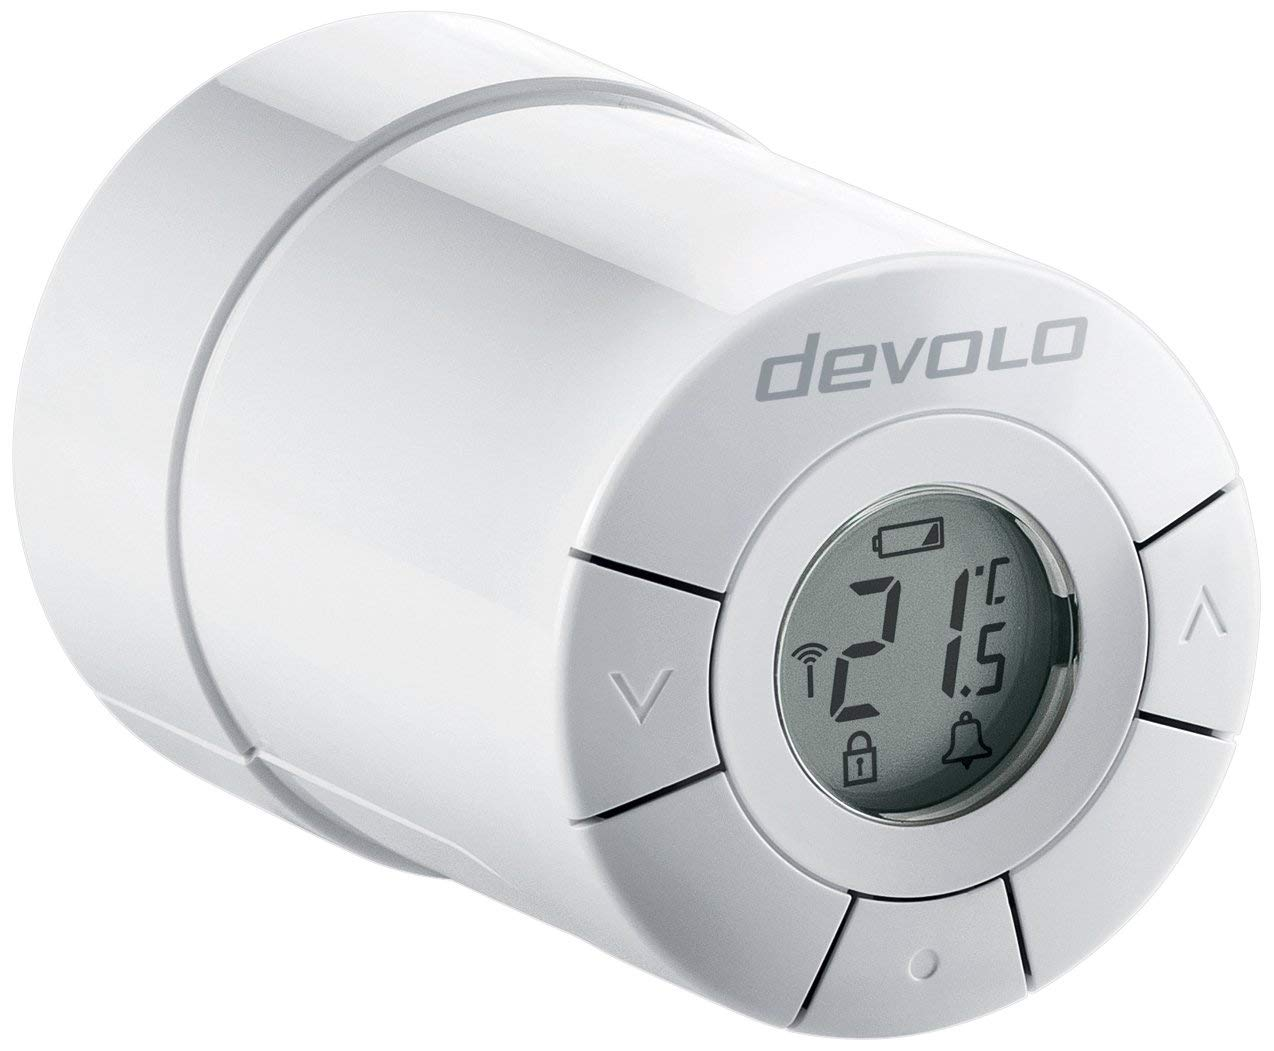 devolo Heizkörperthermostat amazon